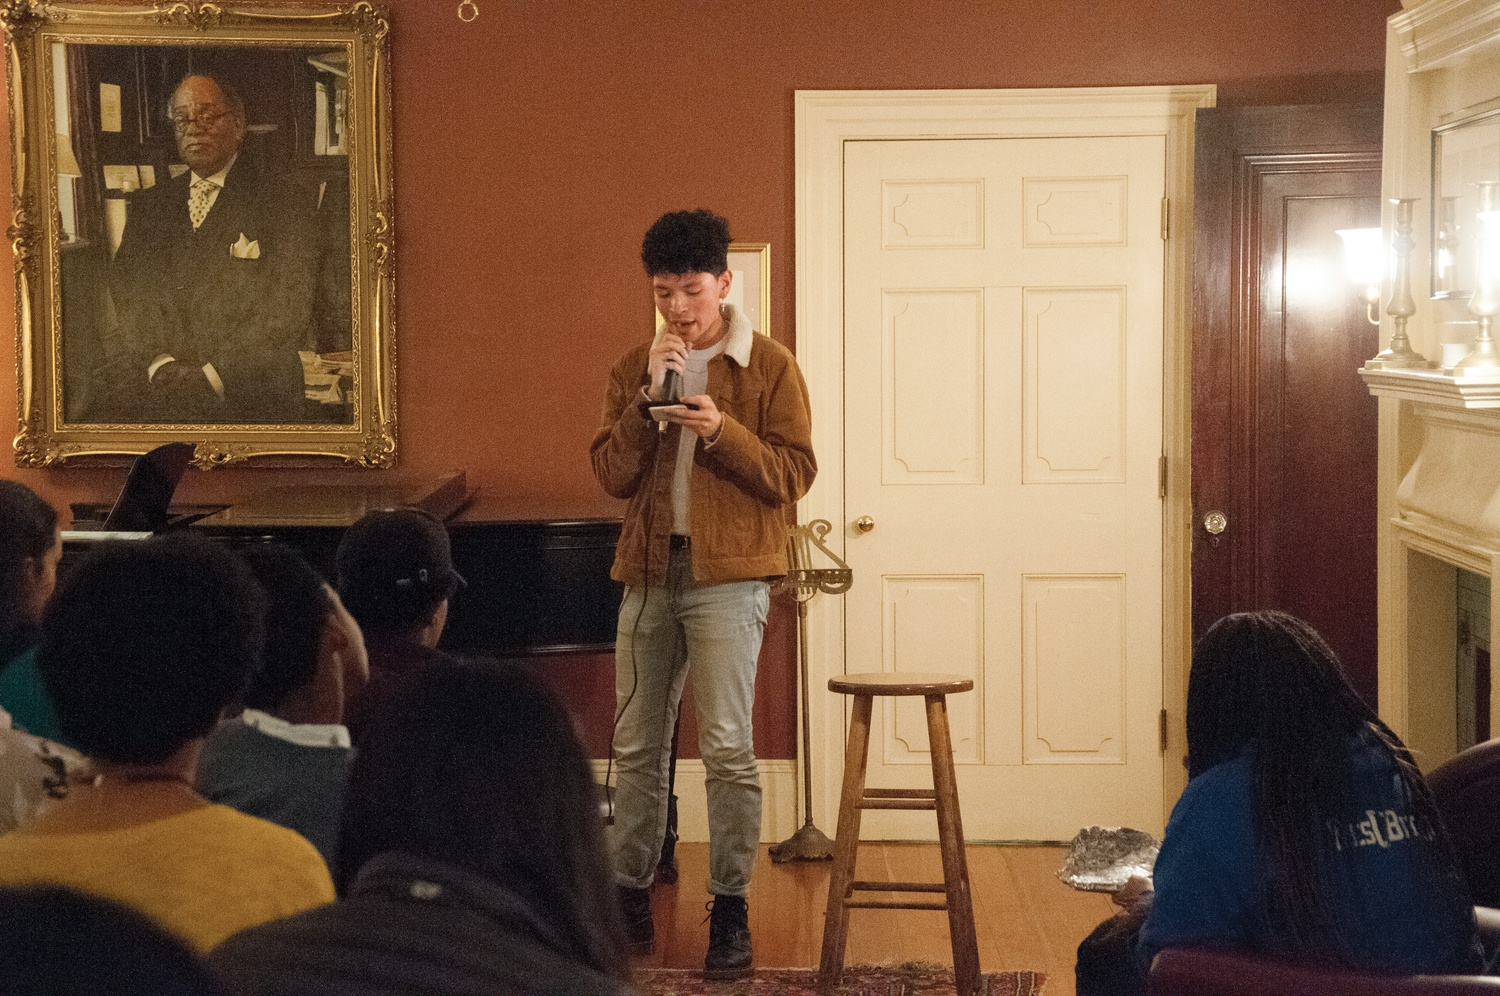 Jesus A. Estrada '22 reads a poem in English and Spanish that narrates a mother-son relationship through gardening work and immigration at the Signet Society Thursday evening. Act On A Dream and other affinity organizations co-hosted an open mic to reflect on immigrant experiences, especially black immigrant experiences, after the arrest of artist 21 Savage.